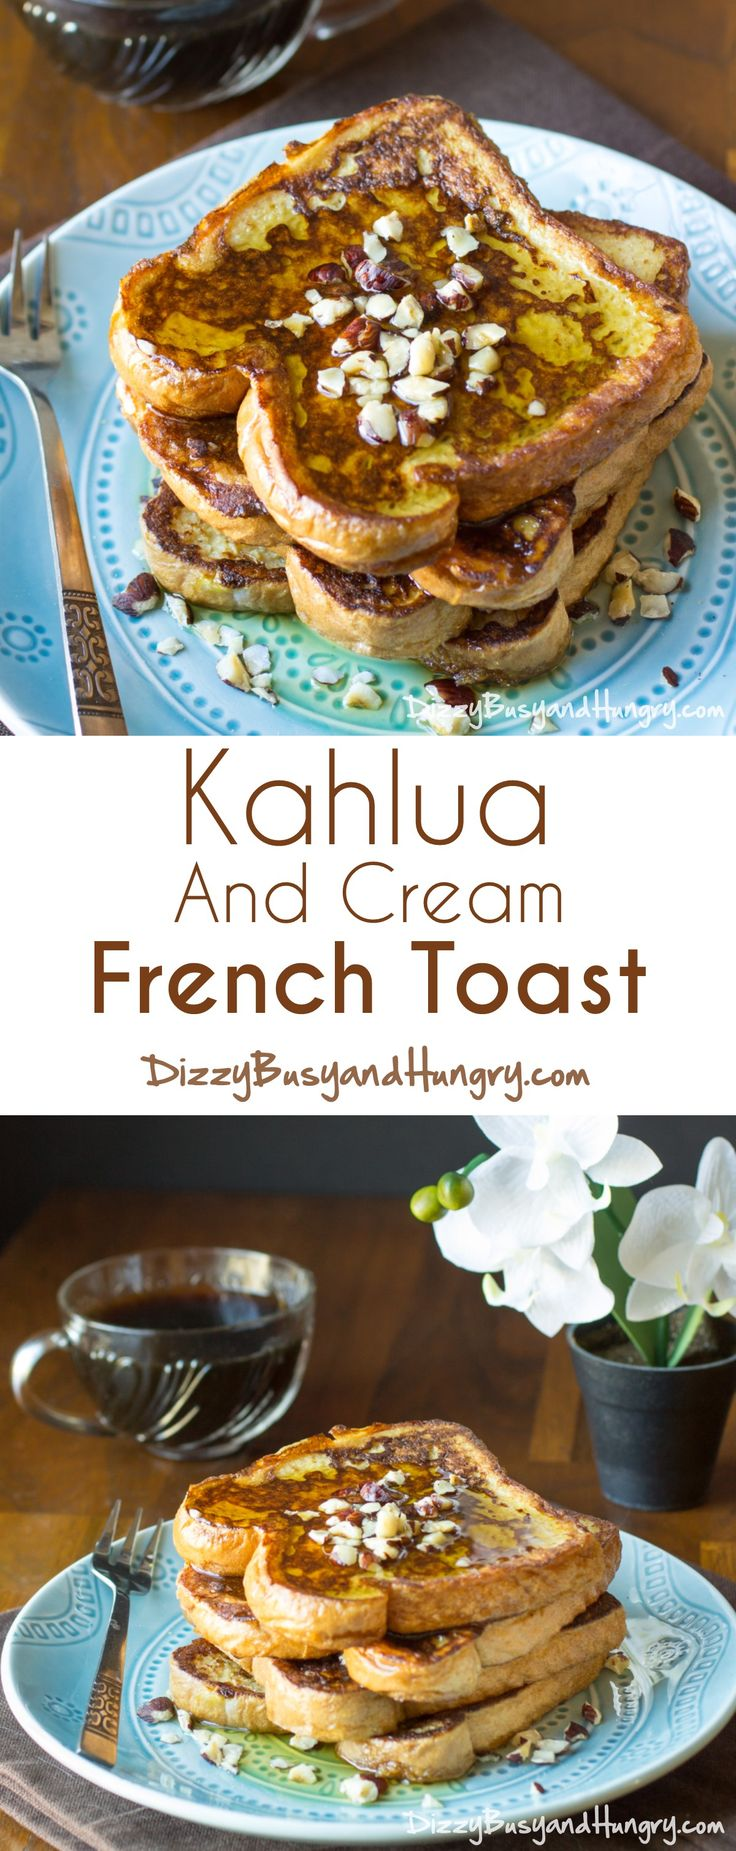 Kahlua and Cream French Toast   DizzyBusyandHungry.com - Elegant variation on French toast incorporating the coffee-infused sweet flavor of Kahlua!